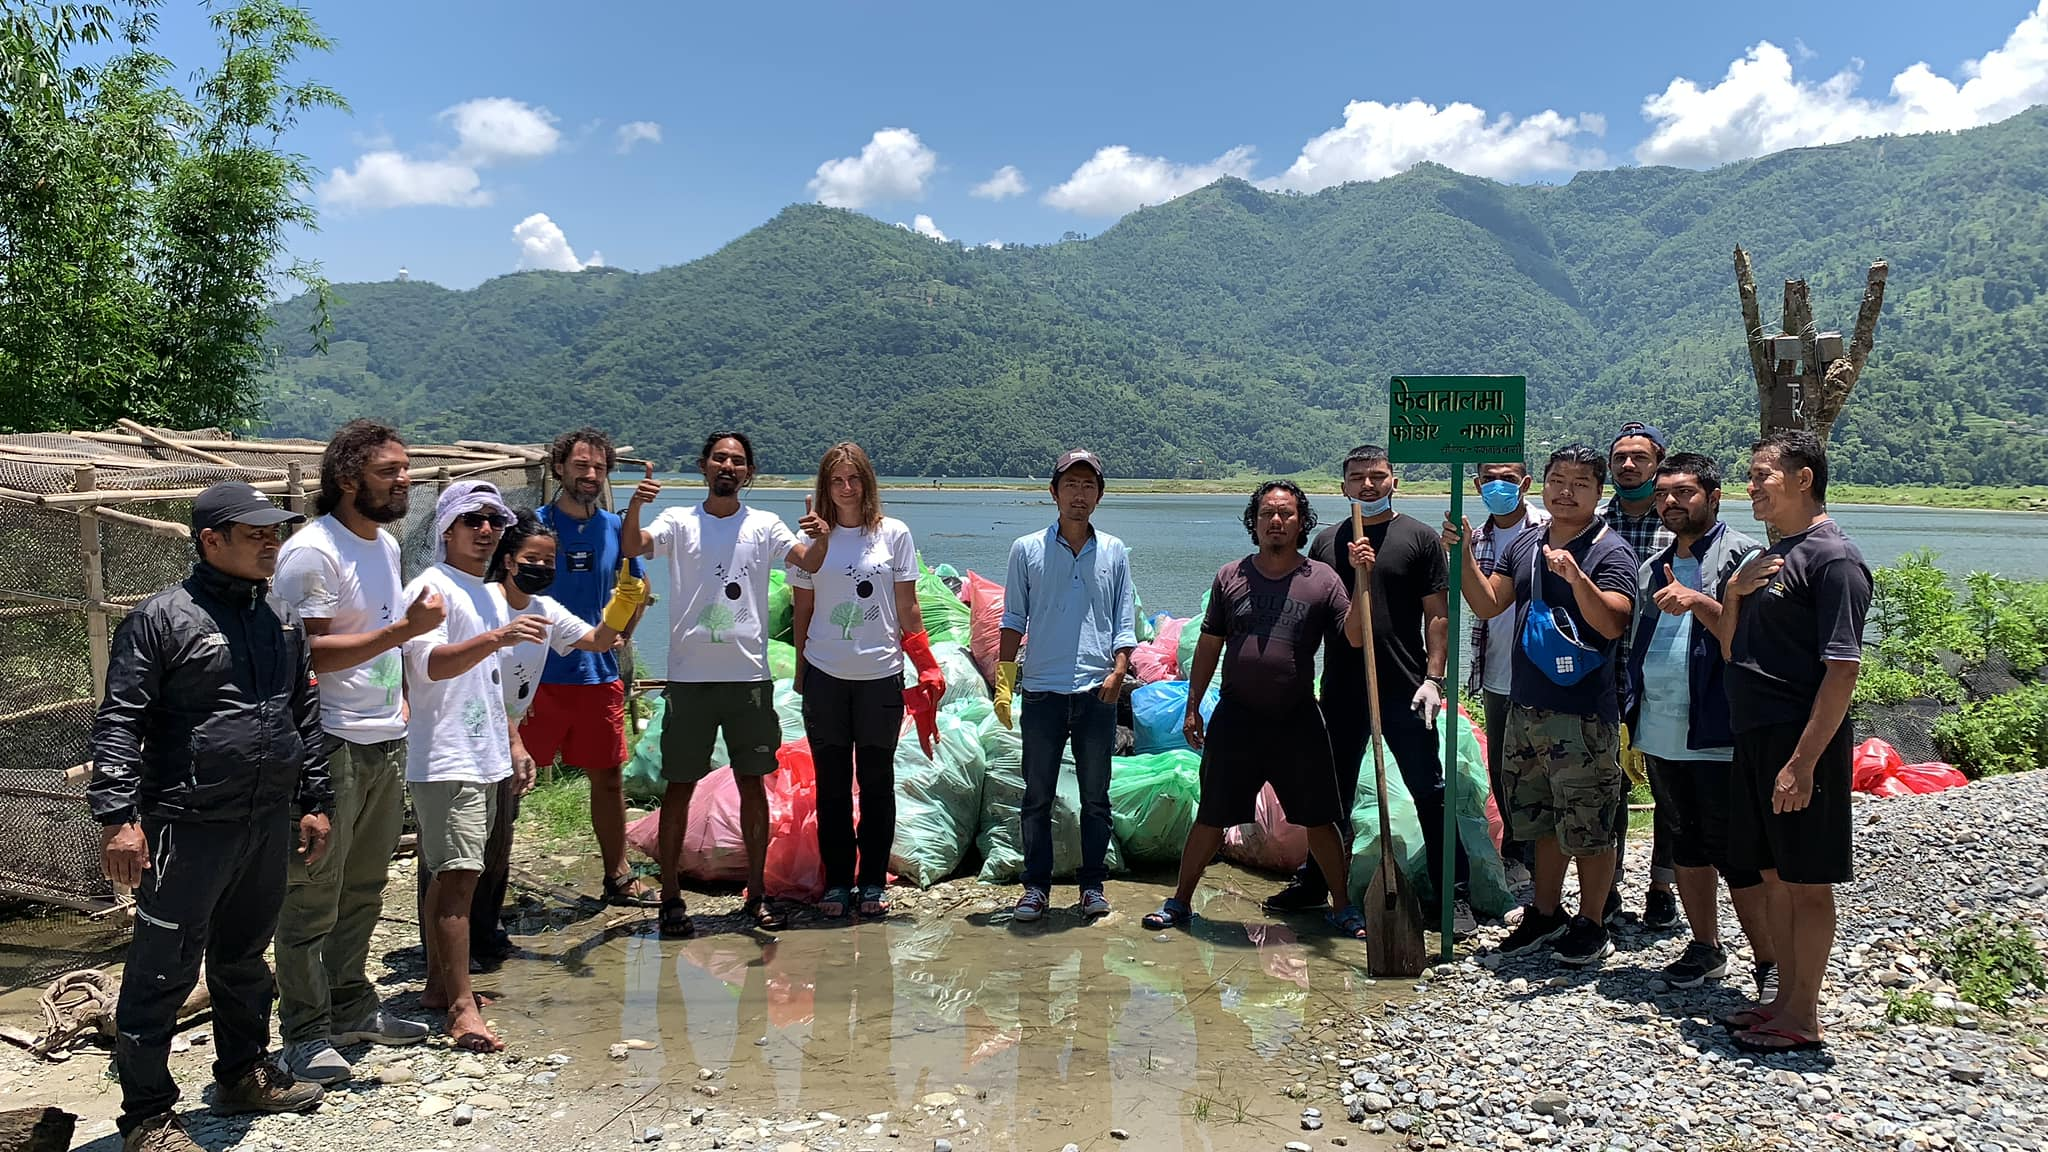 Tourists stranded in Pokhara